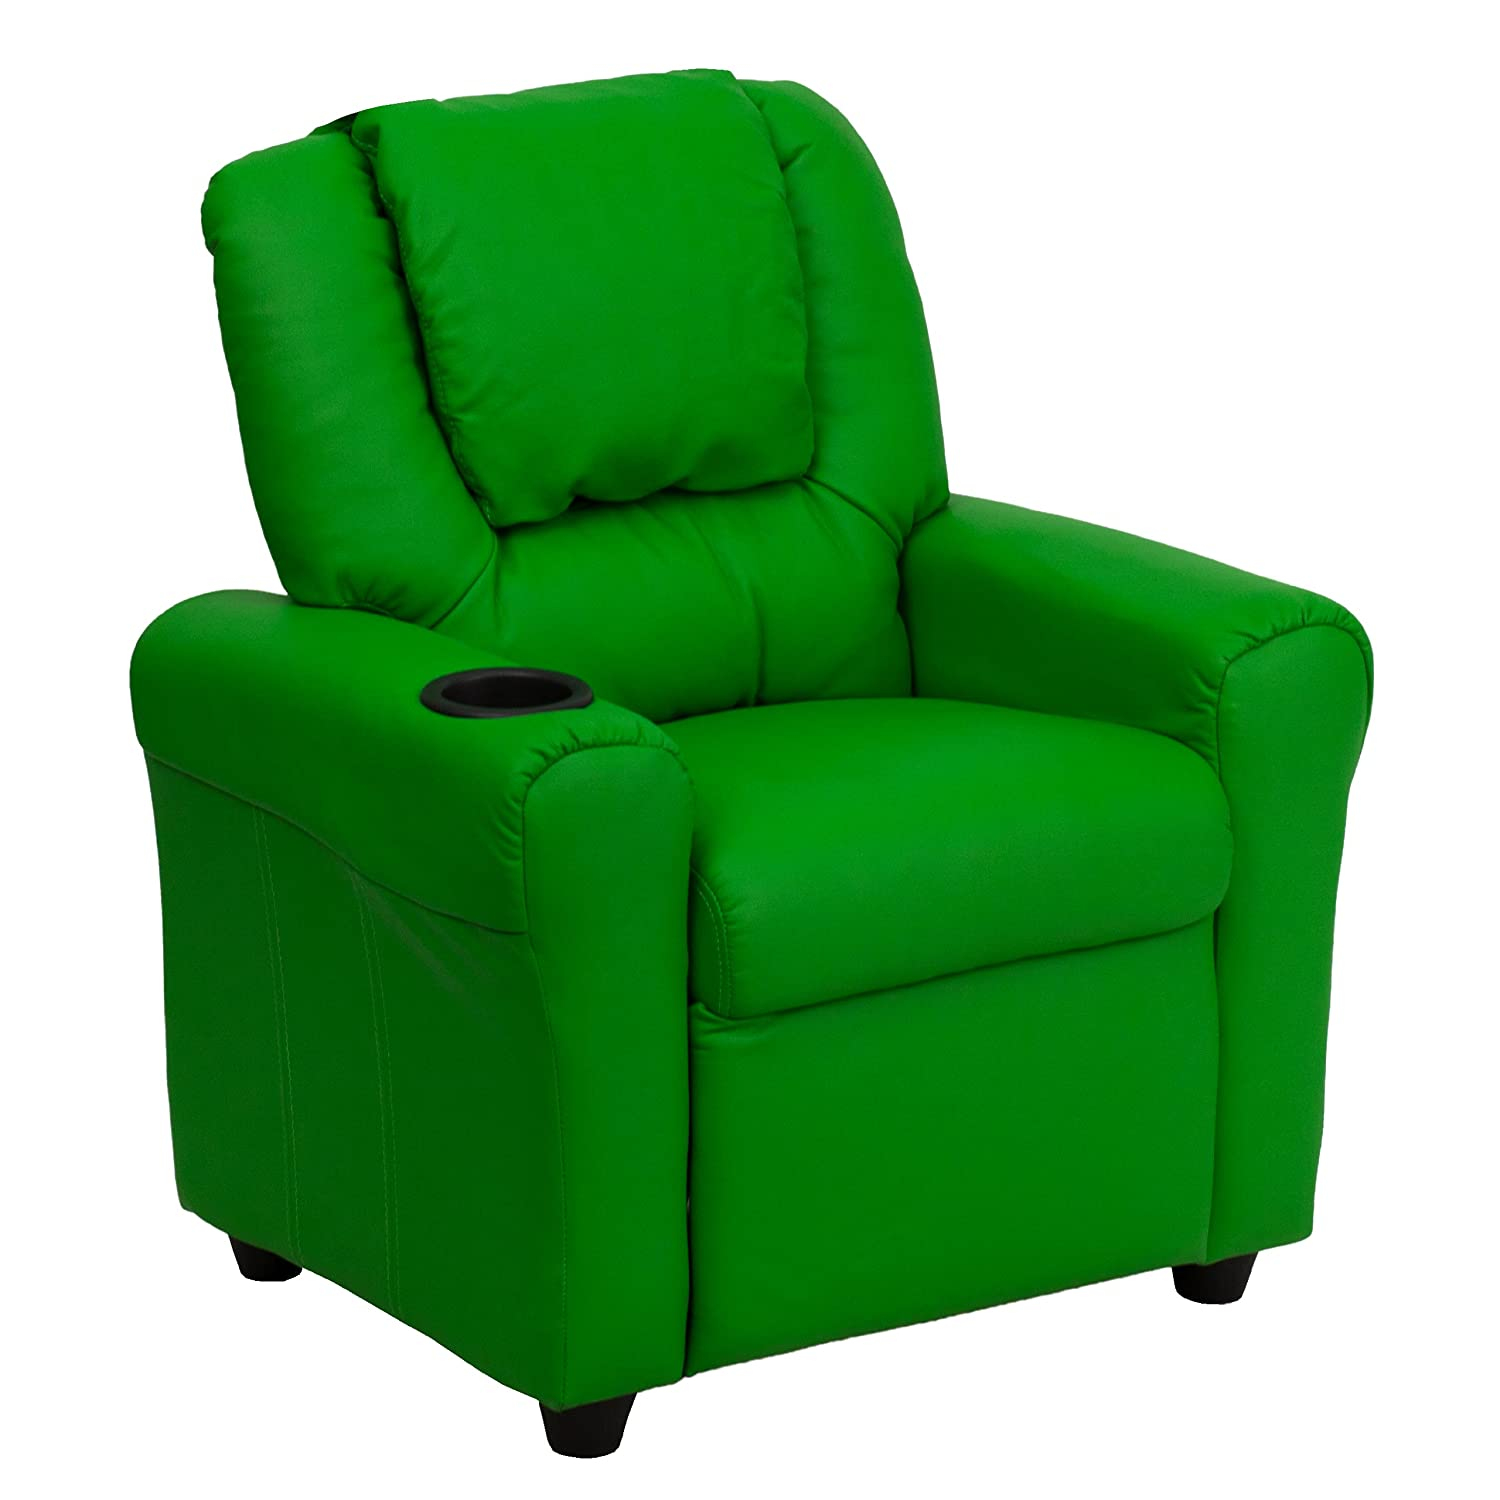 Contemporary Green Vinyl Kids Recliner Holder Outlet sale feature Headr Cup with and Max 52% OFF